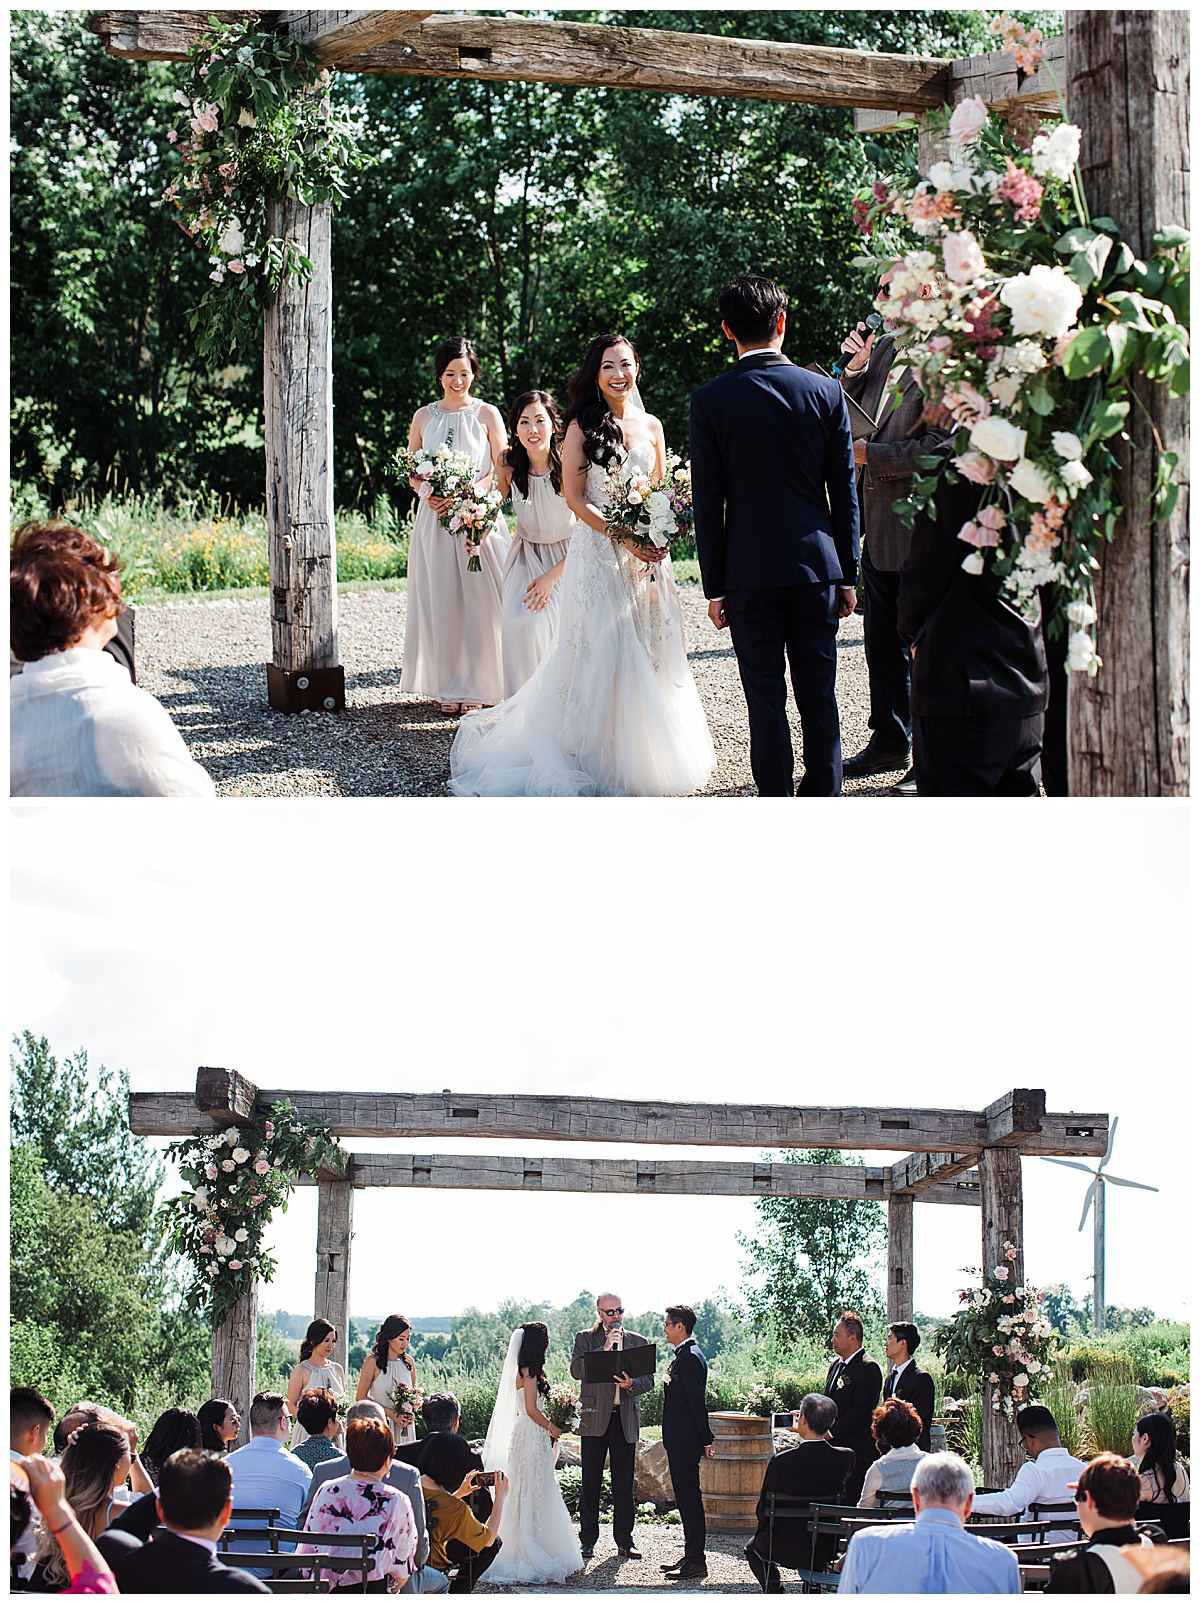 Bride and groom standing at alter at gorgeous winery wedding| wedding pergola| outdoor wedding| Adamo Estate Winery wedding| Toronto photographer| 3photography